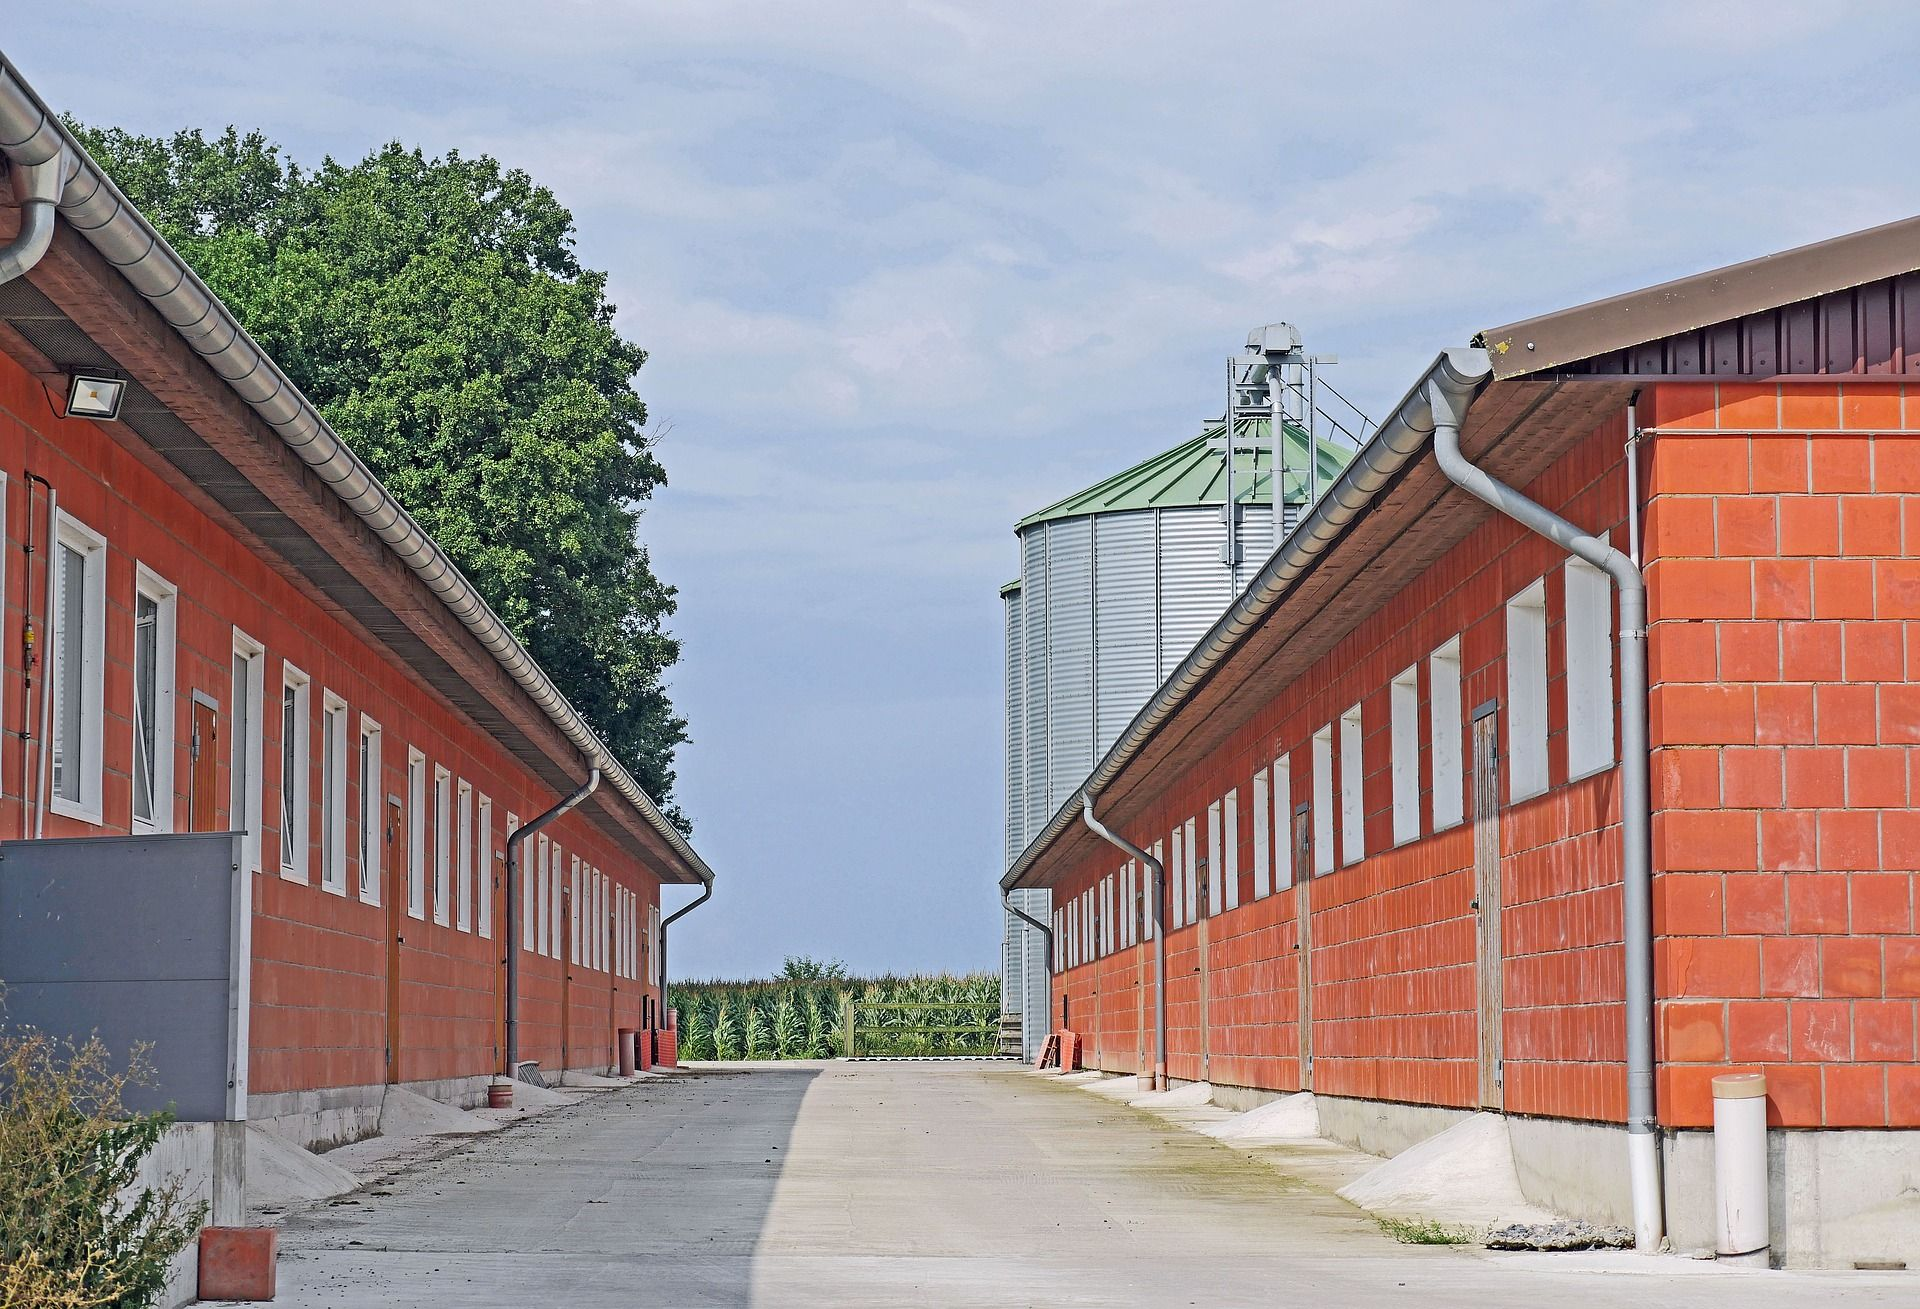 Outside of 2 large intensive hen houses